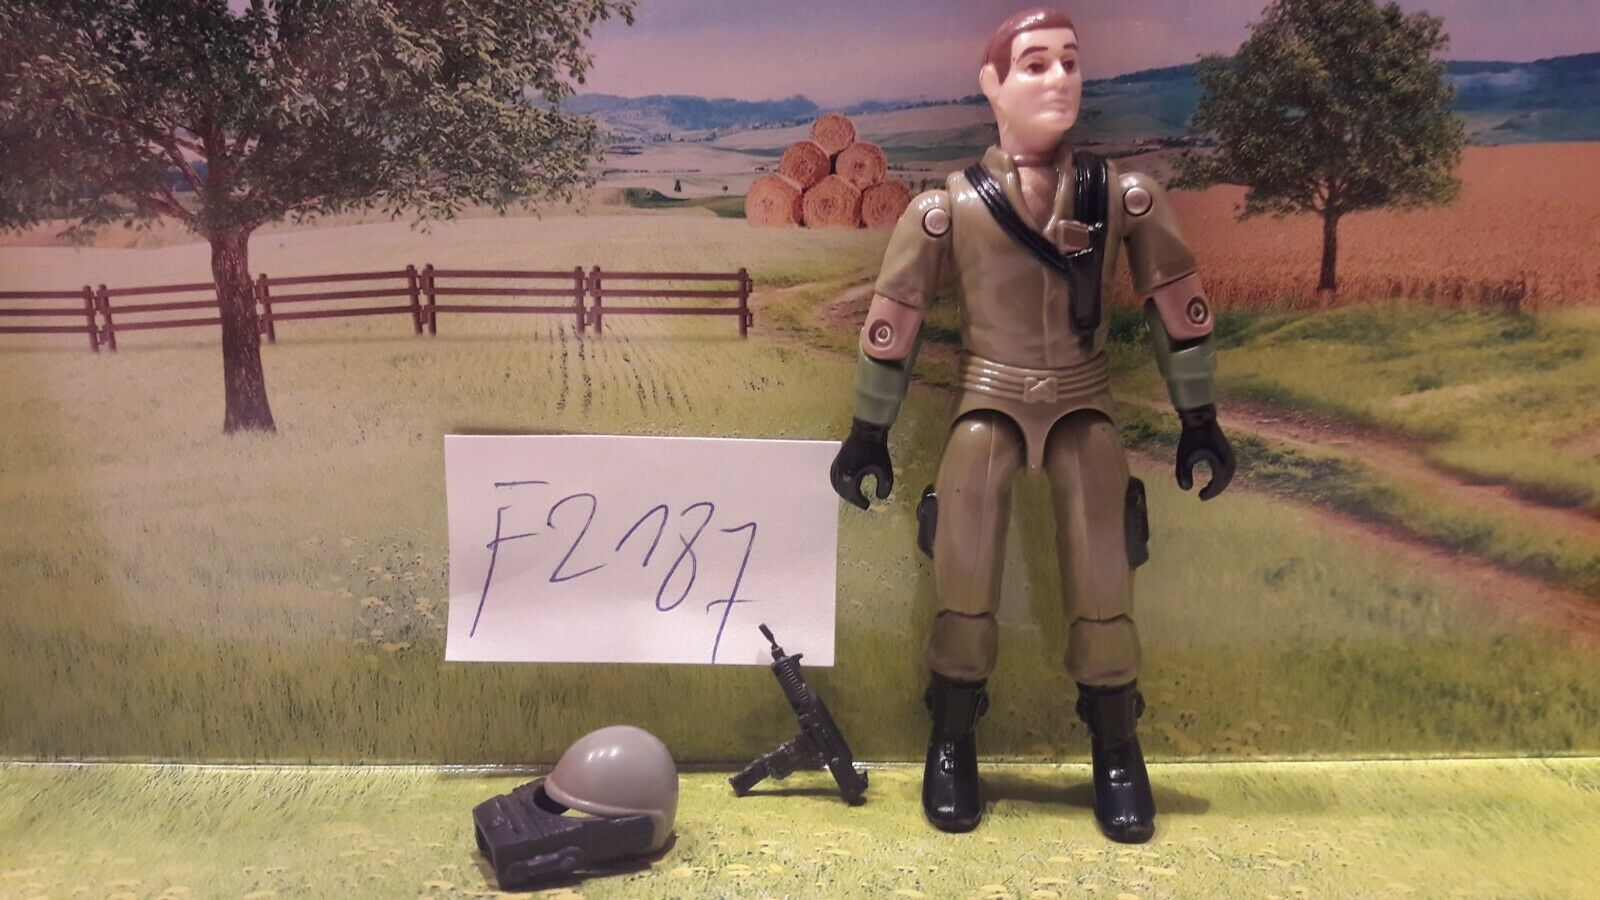 F2187 gi joe steeler complete no loose joints no broken credch uzi has some wear